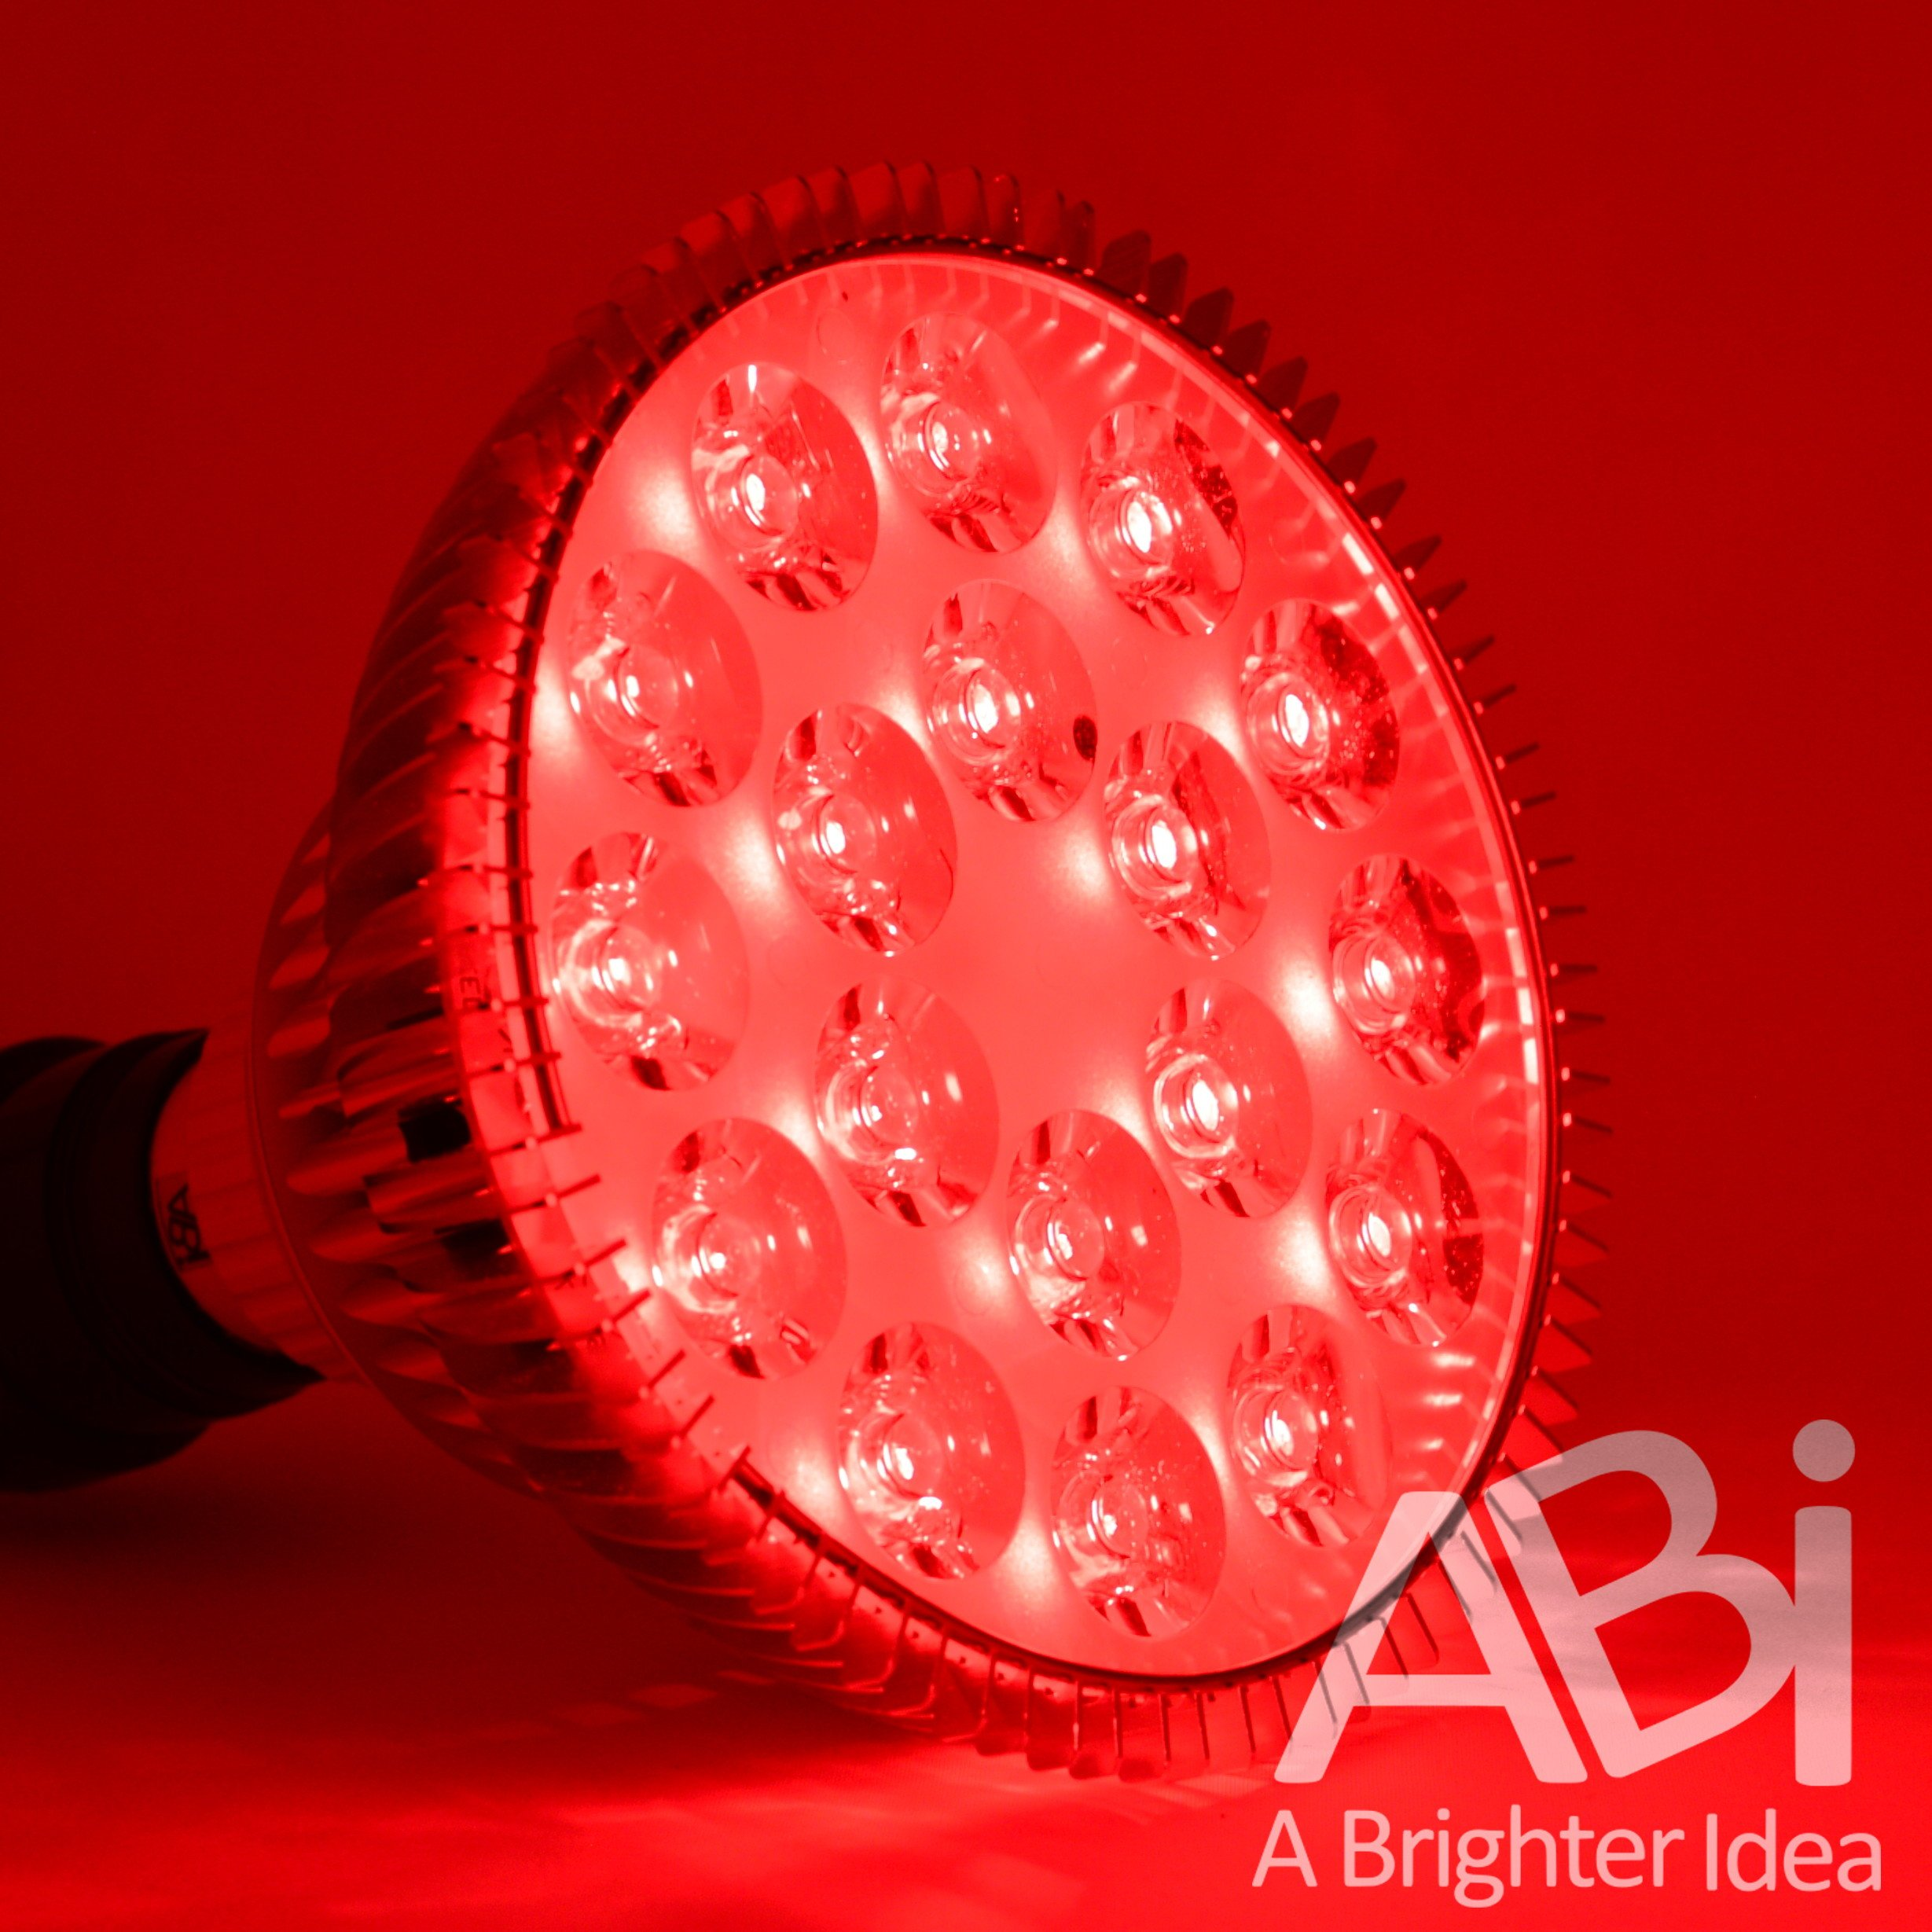 ABI 25W Deep Red 660nm LED Light Bulb Bloom Booster for Flowering, Fruting, Grow Spectrum Enhancement, and Light Therapy